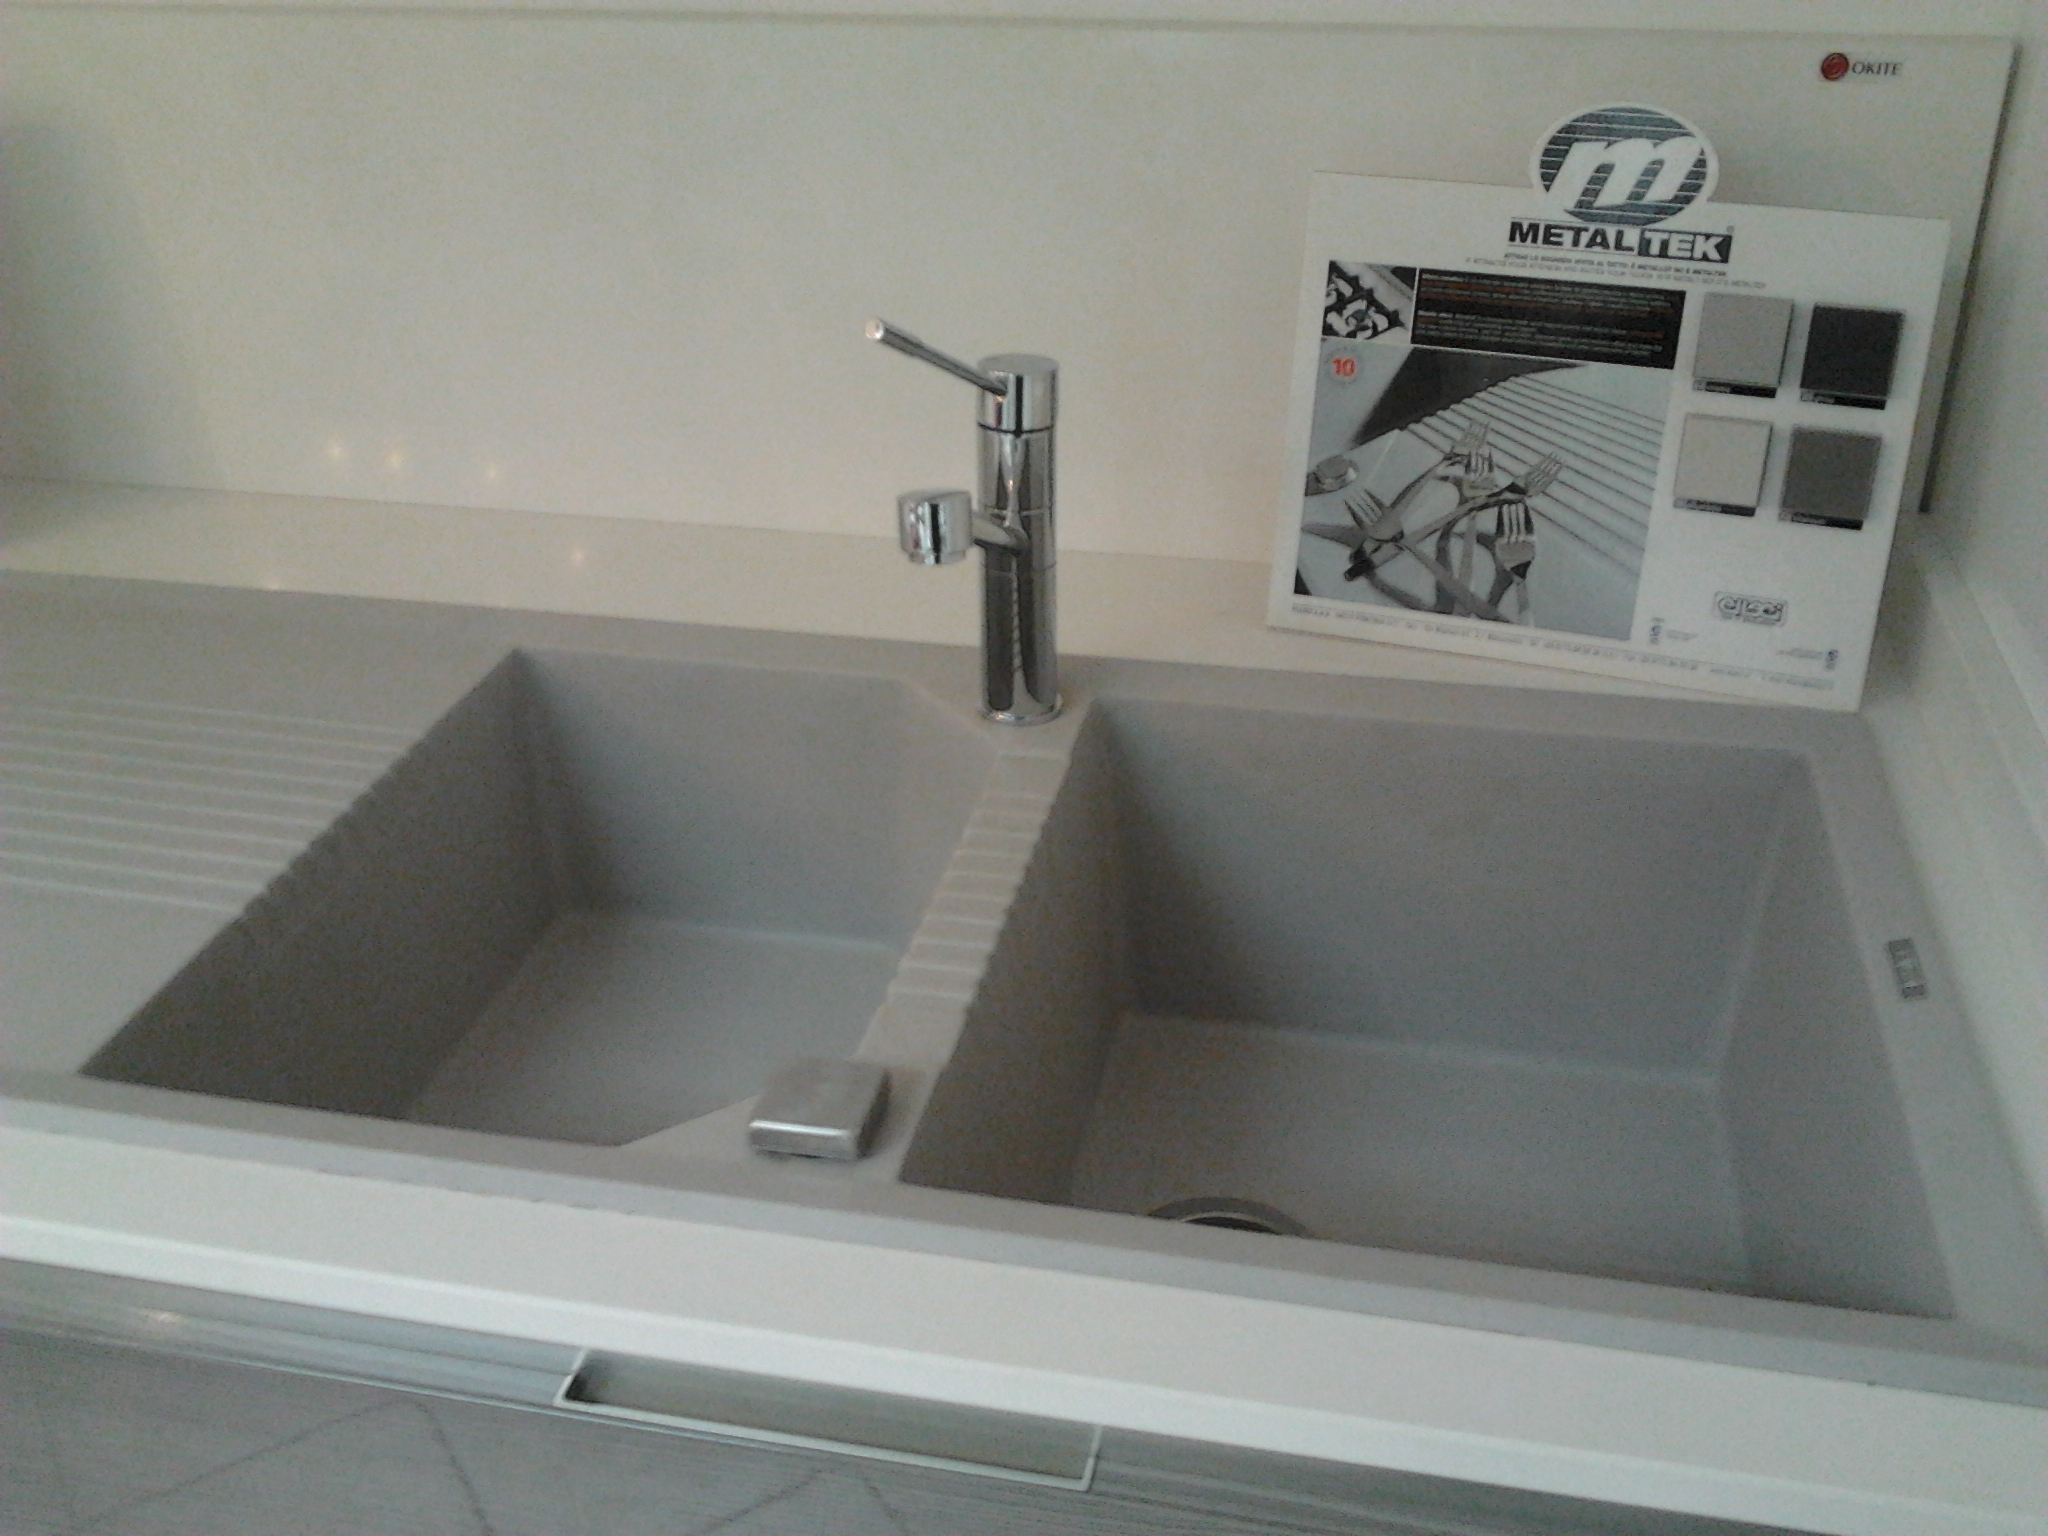 Top Cucina Gres. Trendy Top Corian Cucina With Top Cucina Gres. Free ...